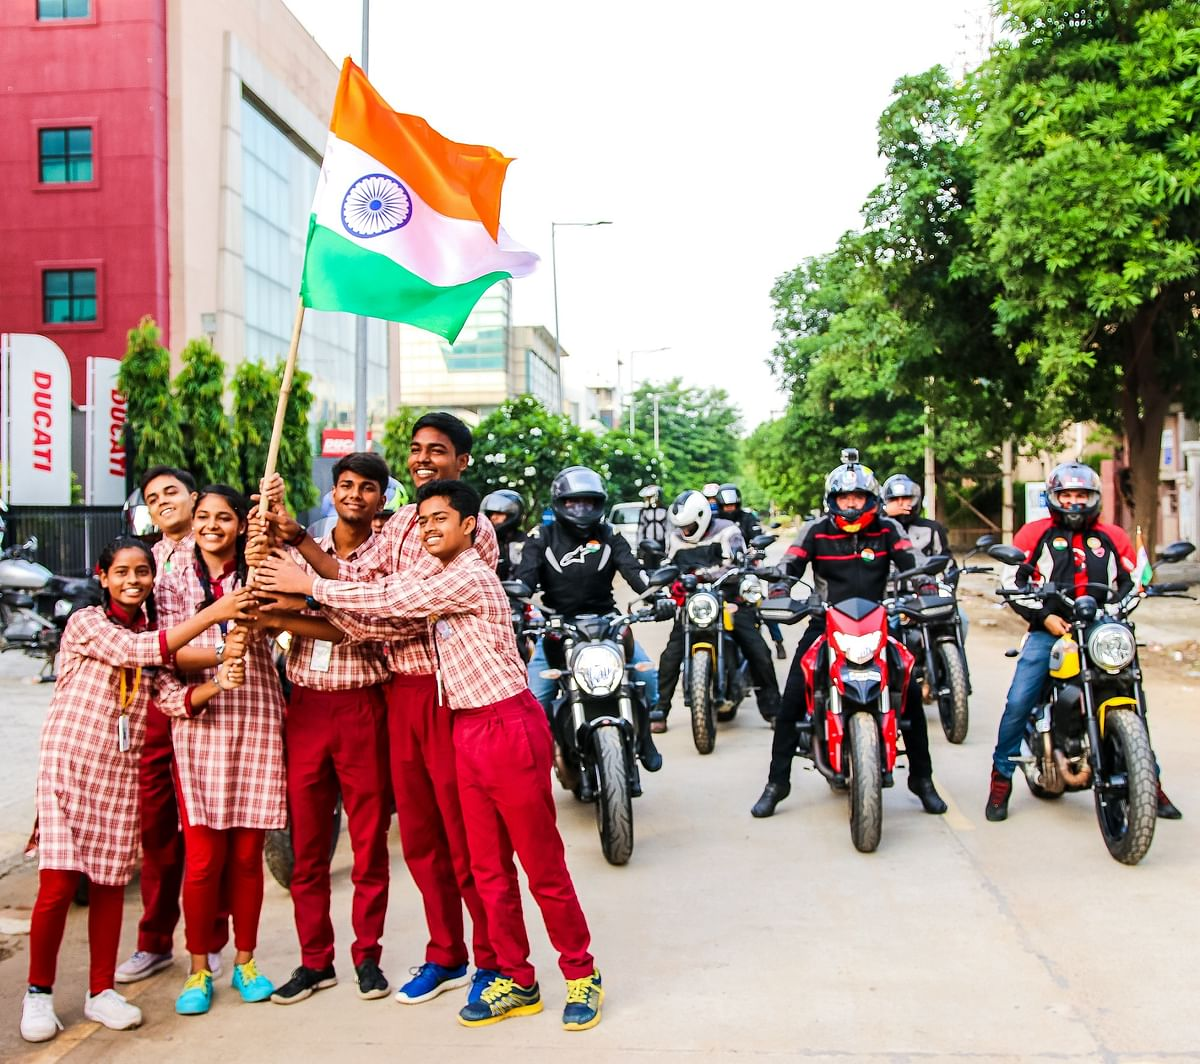 Ducati India celebrates Independence Day with Lotus Petal Foundation